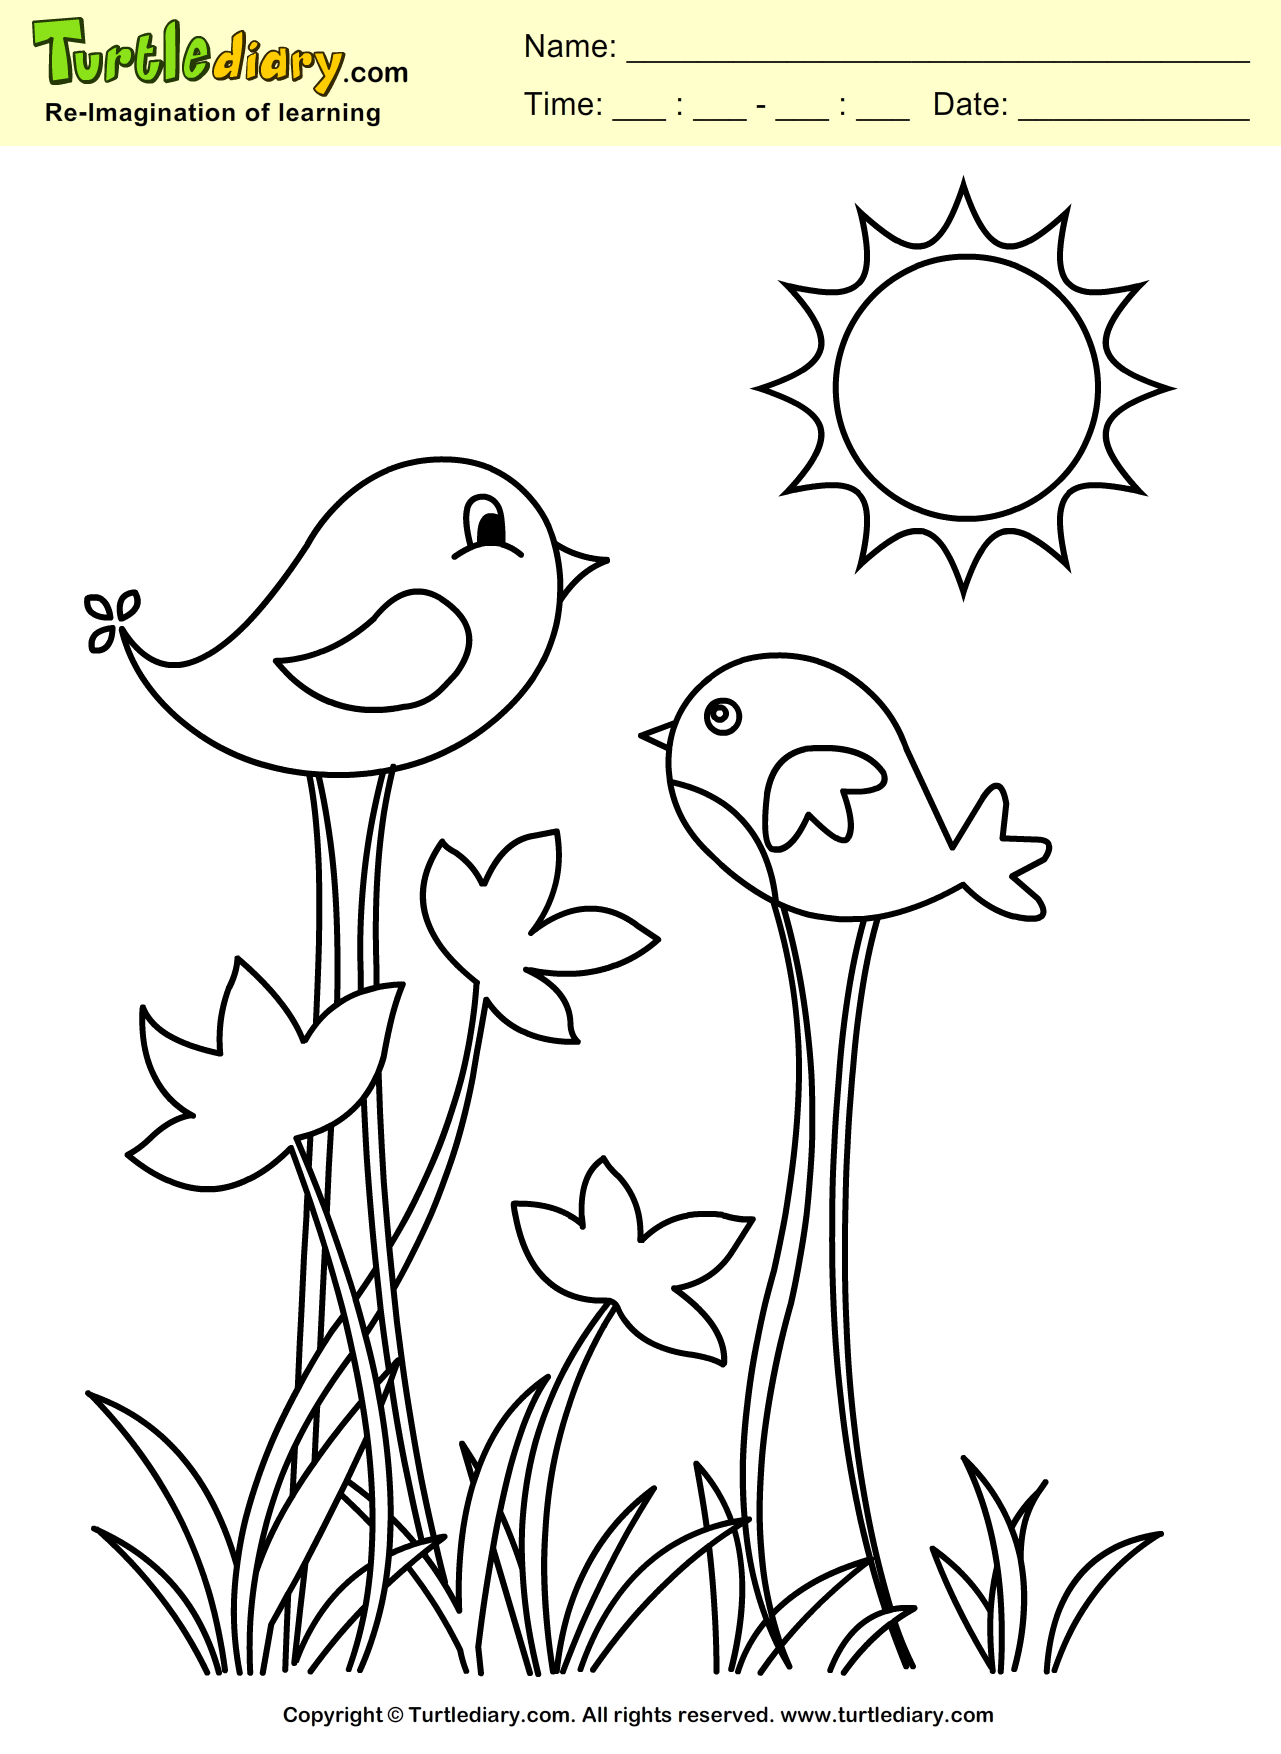 Download, Print, And Color Turtle Diary's Spring Bird